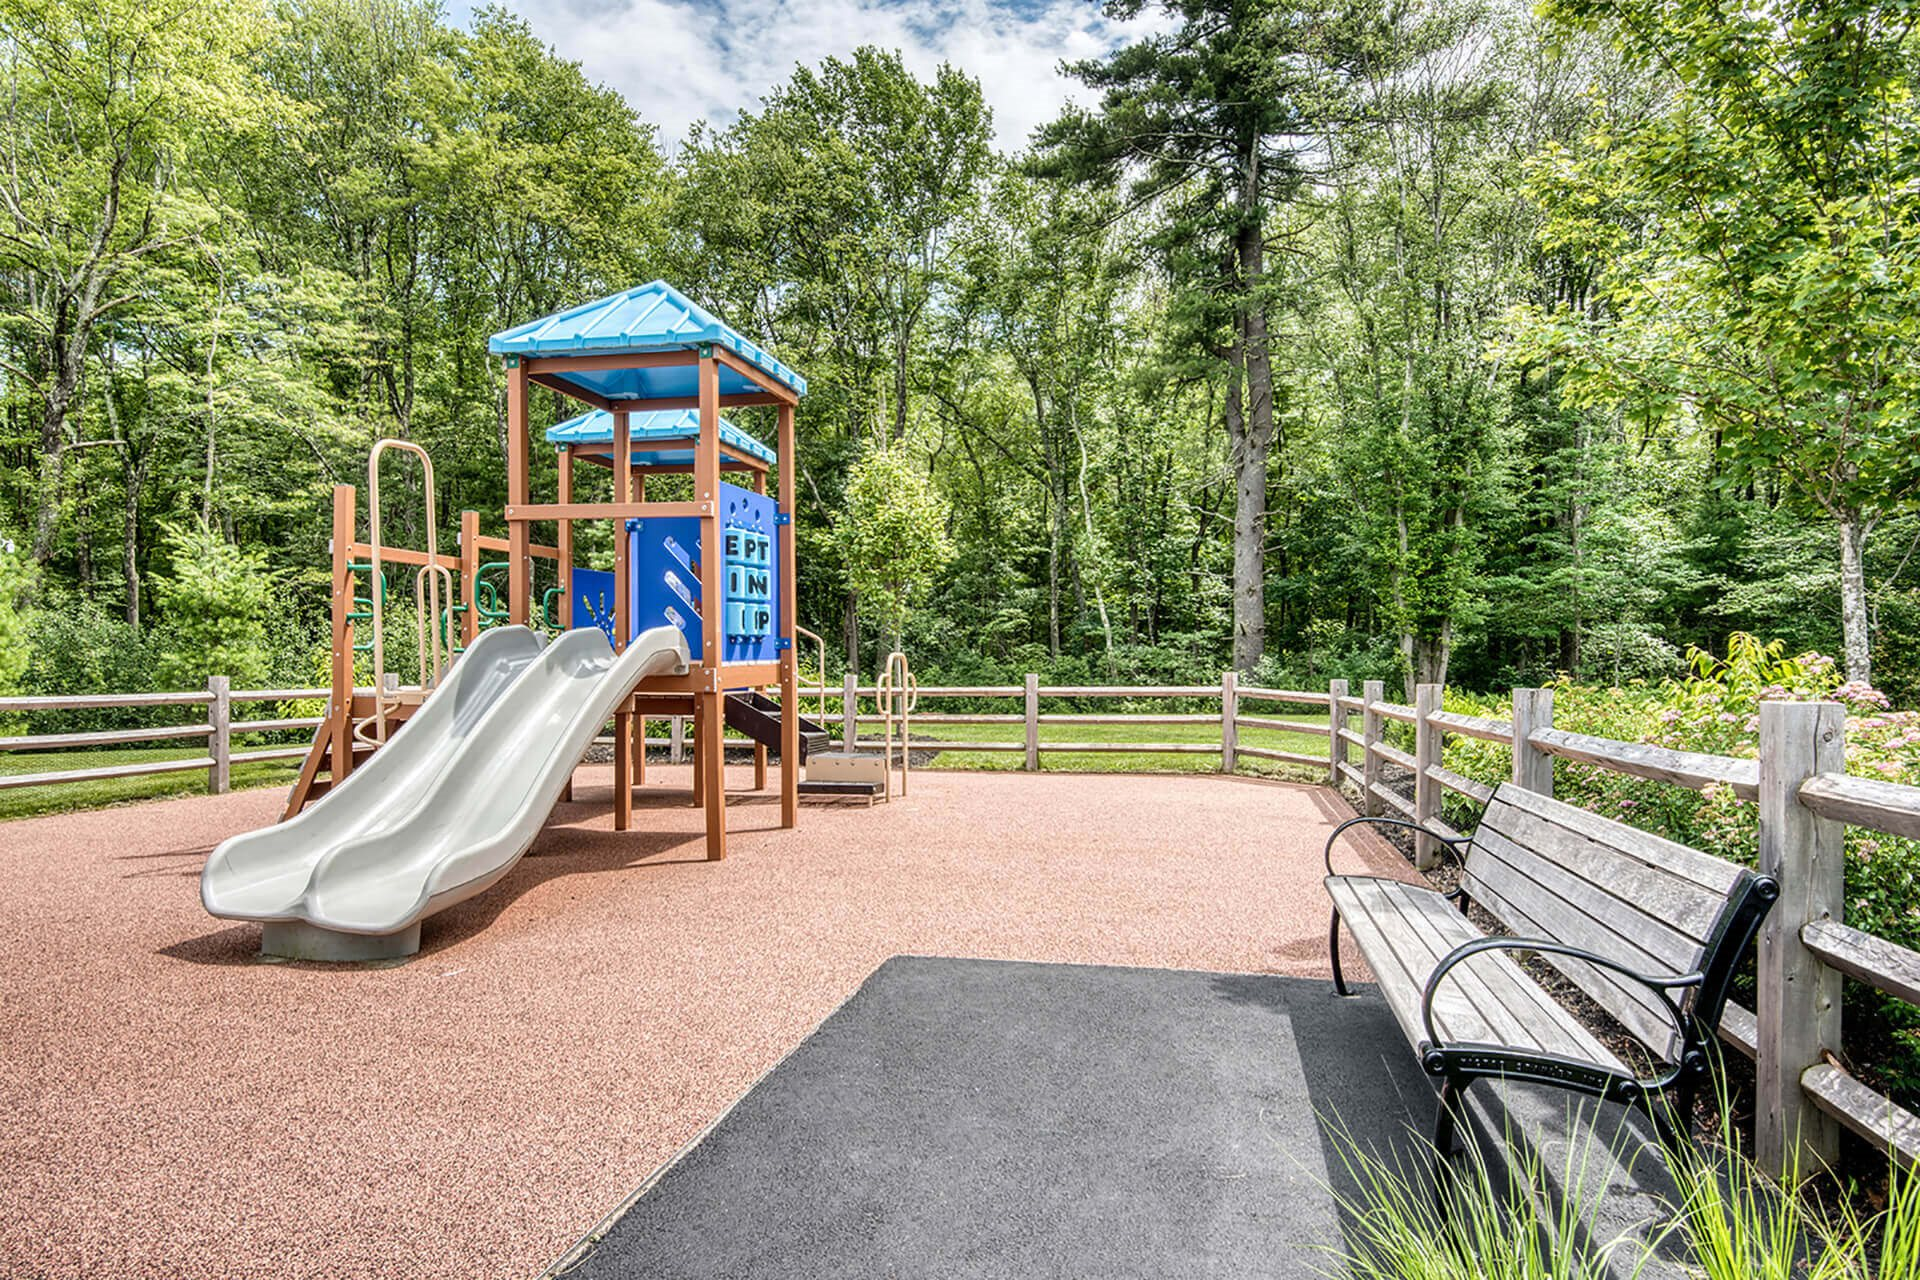 Outdoor playground, at Hopkinton by Windsor, Hopkinton, 01748